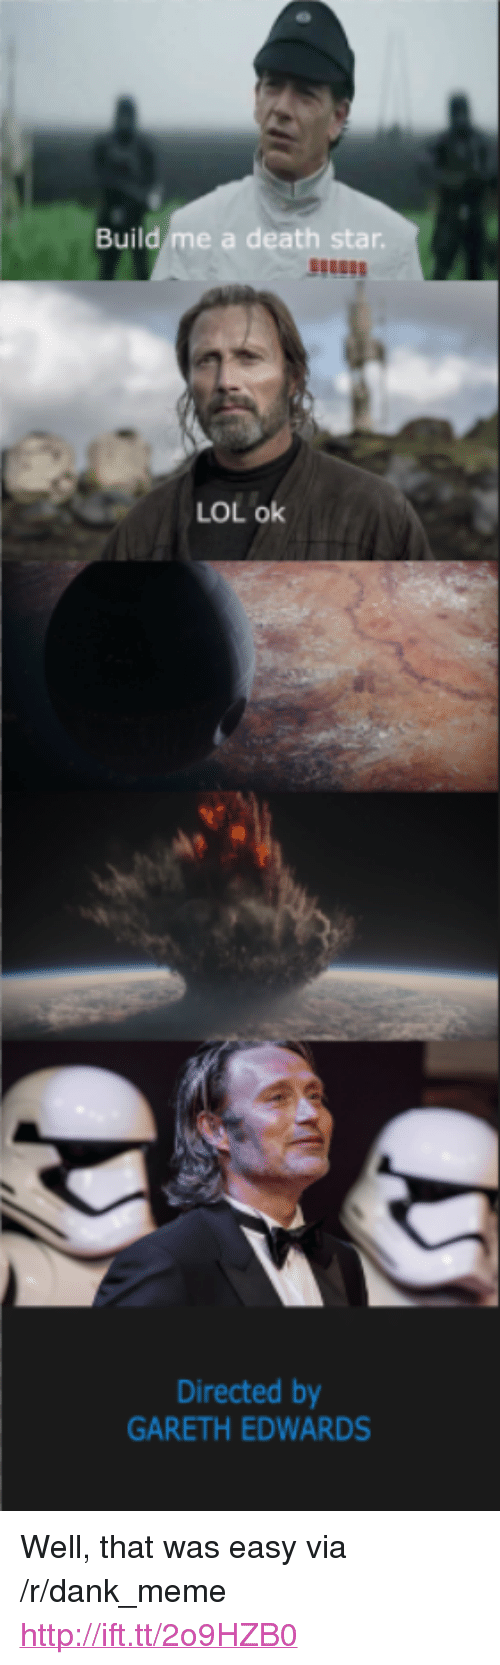 """That Was Easy: Build me a death star  LOL ok  Directed by  GARETH EDWARDS <p>Well, that was easy via /r/dank_meme <a href=""""http://ift.tt/2o9HZB0"""">http://ift.tt/2o9HZB0</a></p>"""